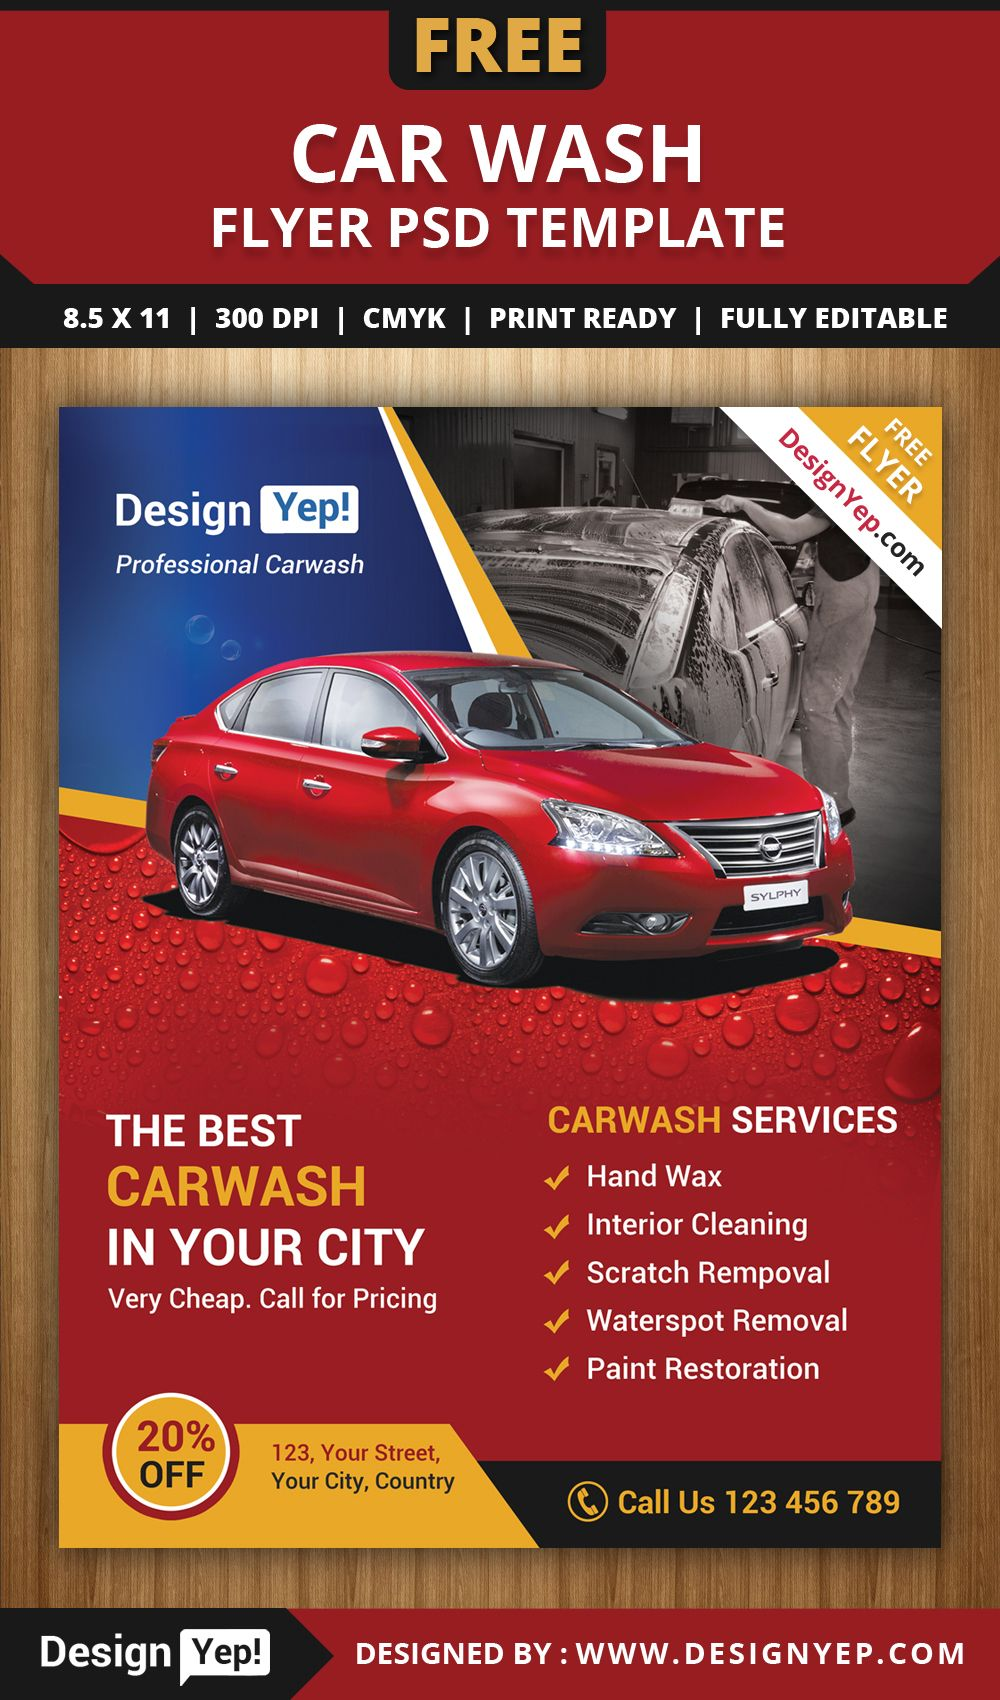 car wash flyer psd template 3232 designyep flyers car wash flyer psd template designyep